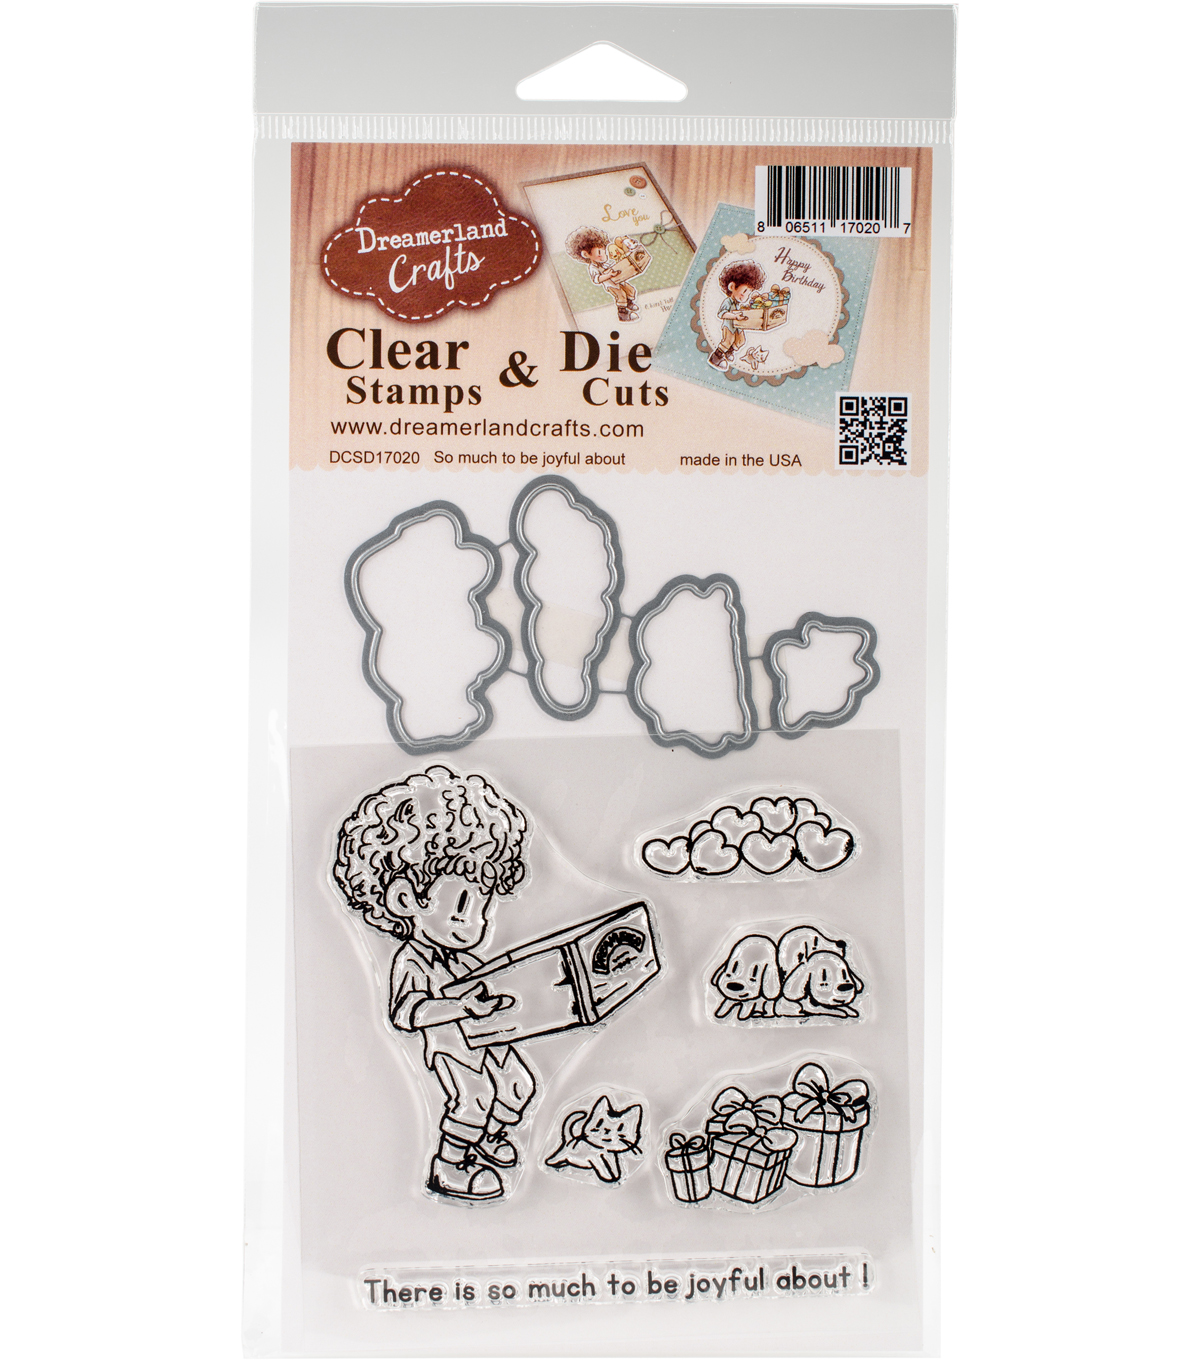 Dreamerland Crafts Clear Stamp & Die Set-So Much To Be Joyful About